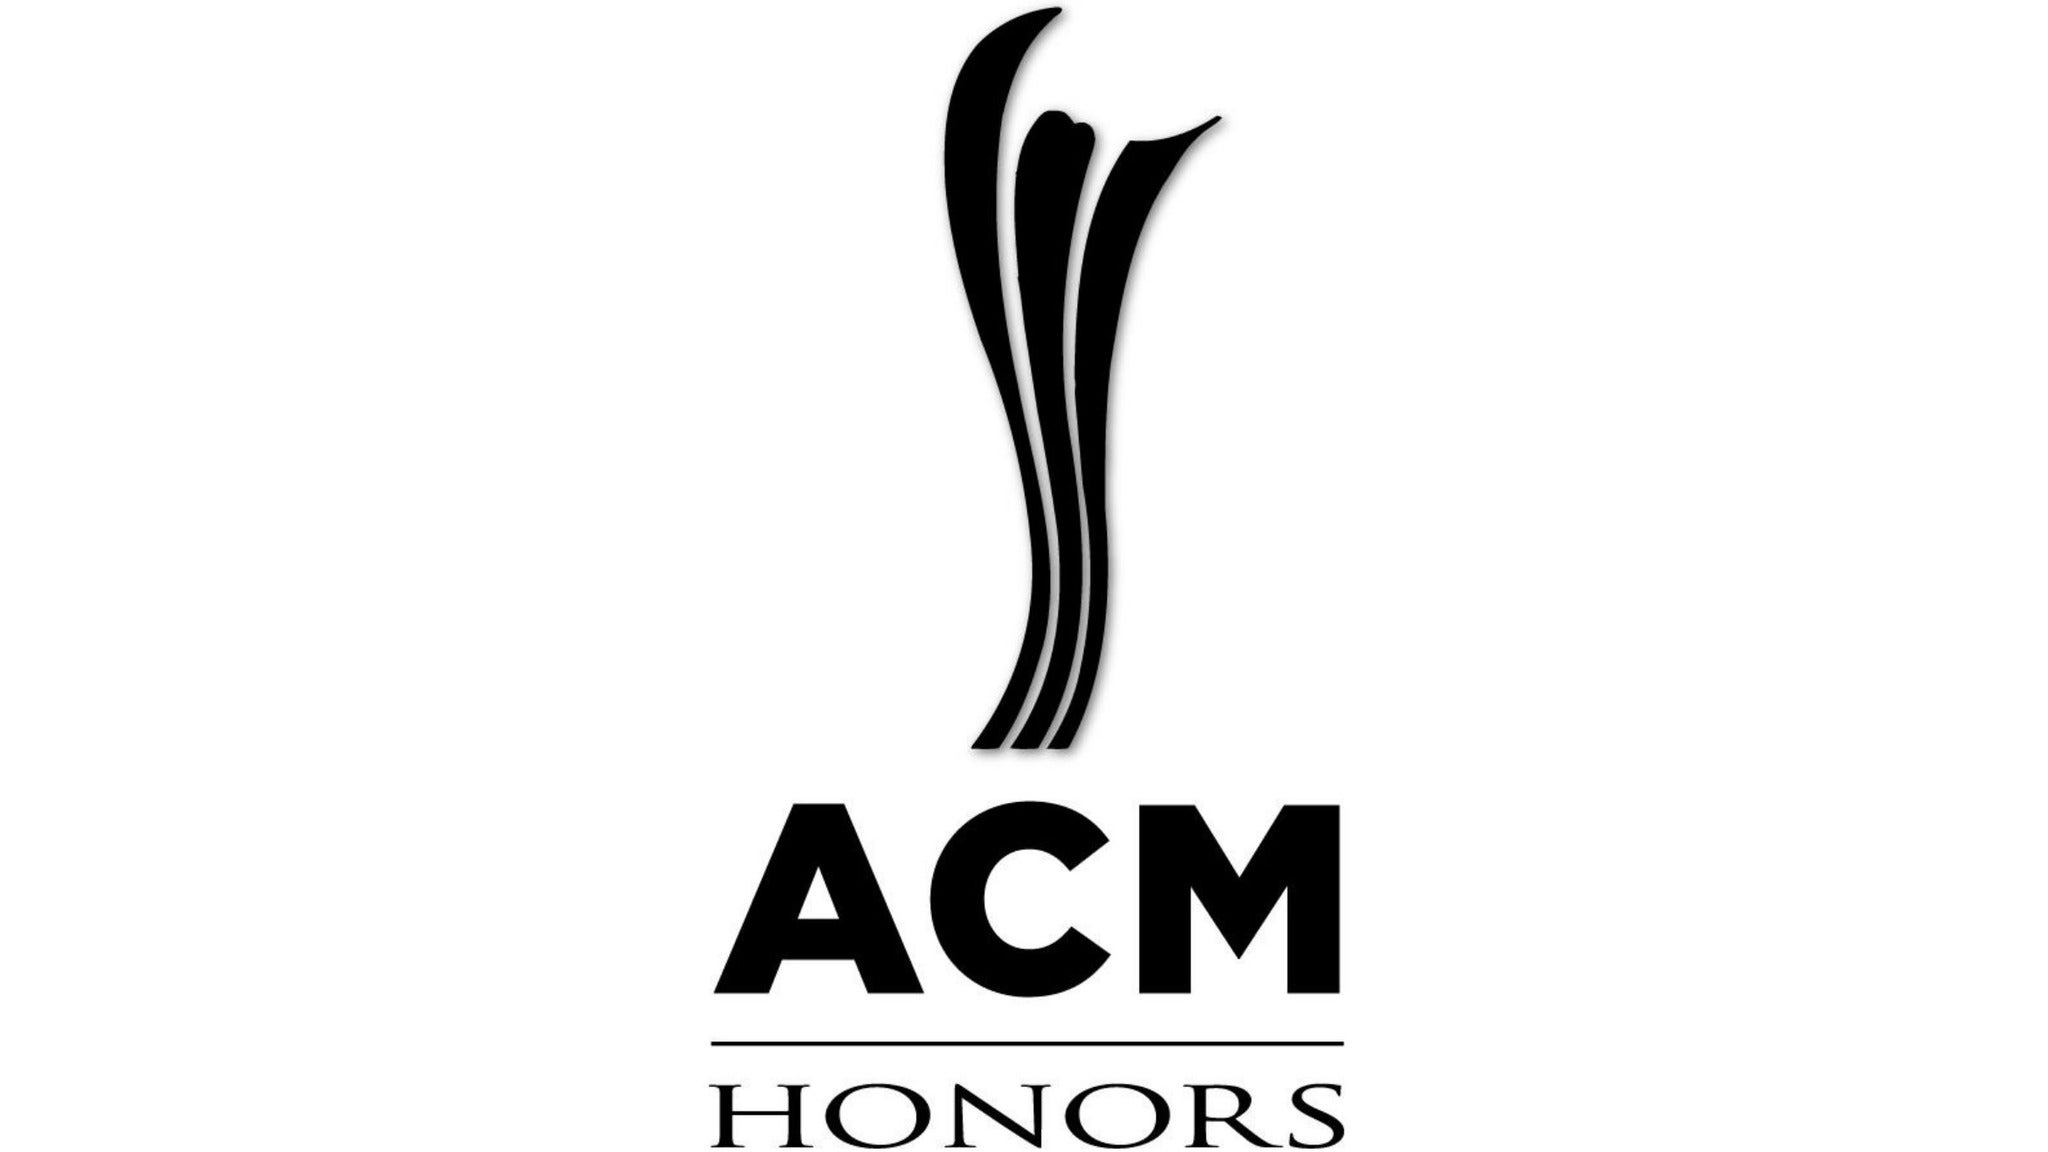 13th Annual ACM Honors at Ryman Auditorium